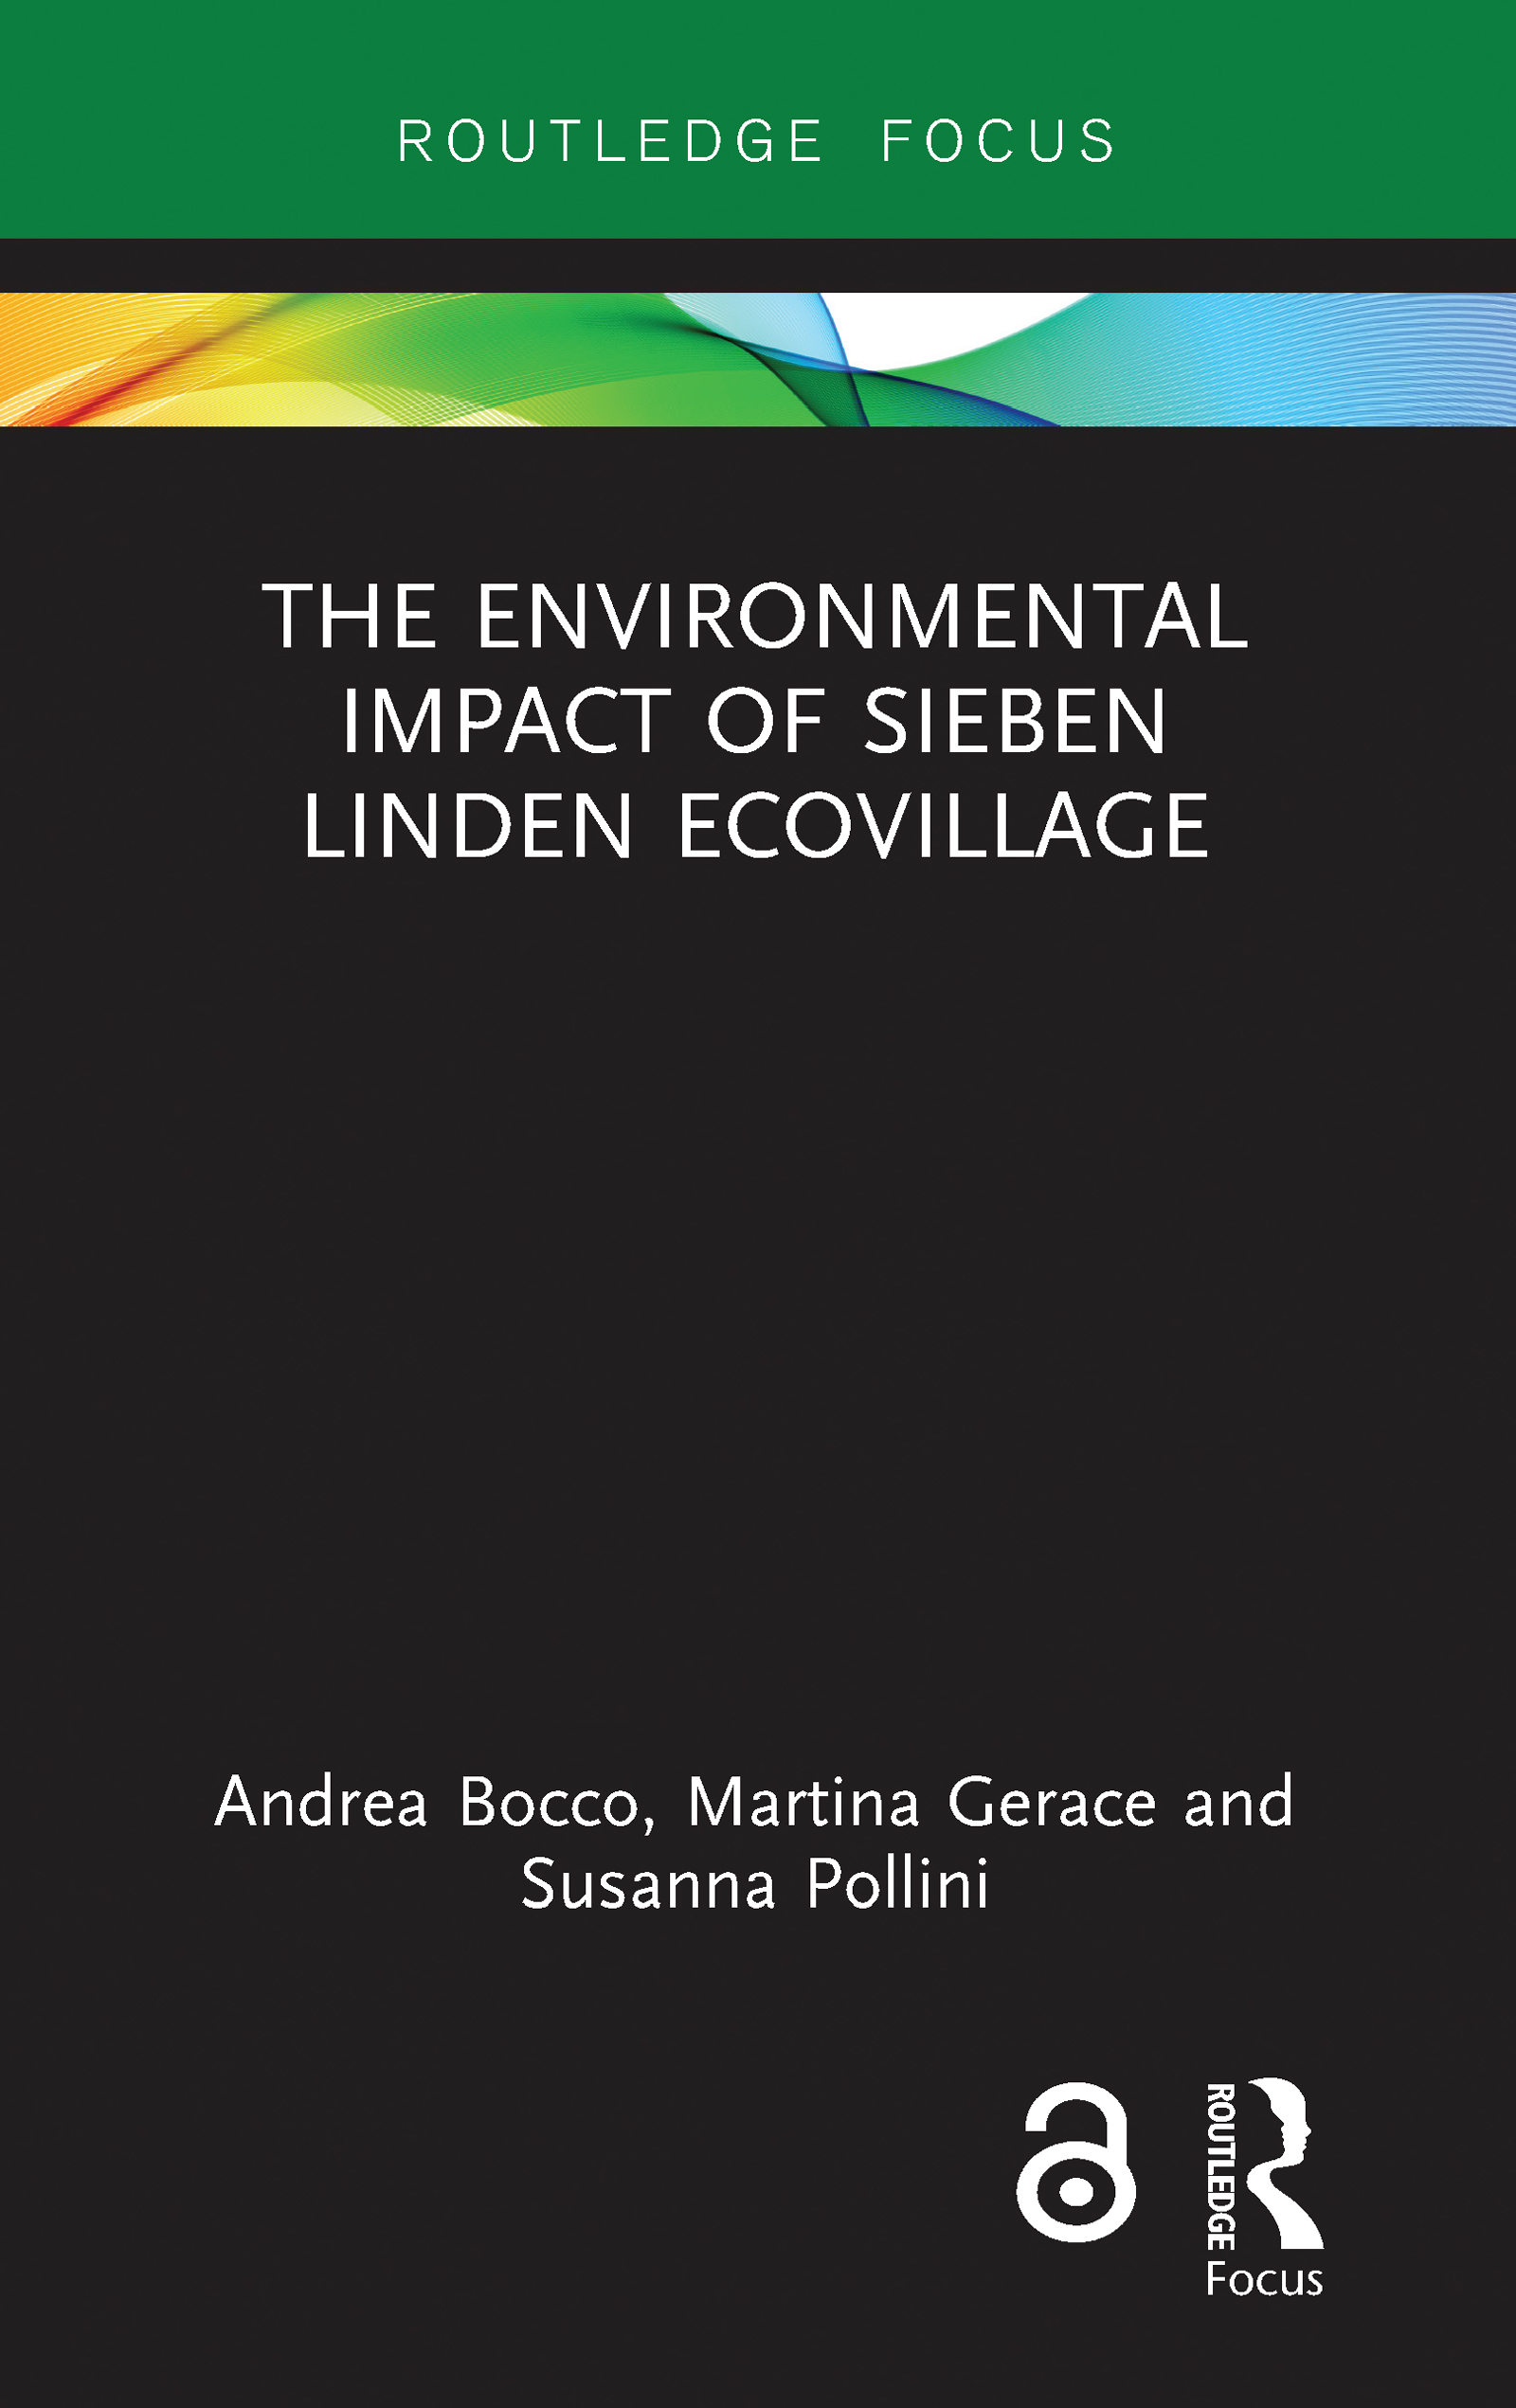 The Environmental Impact of Sieben Linden Ecovillage